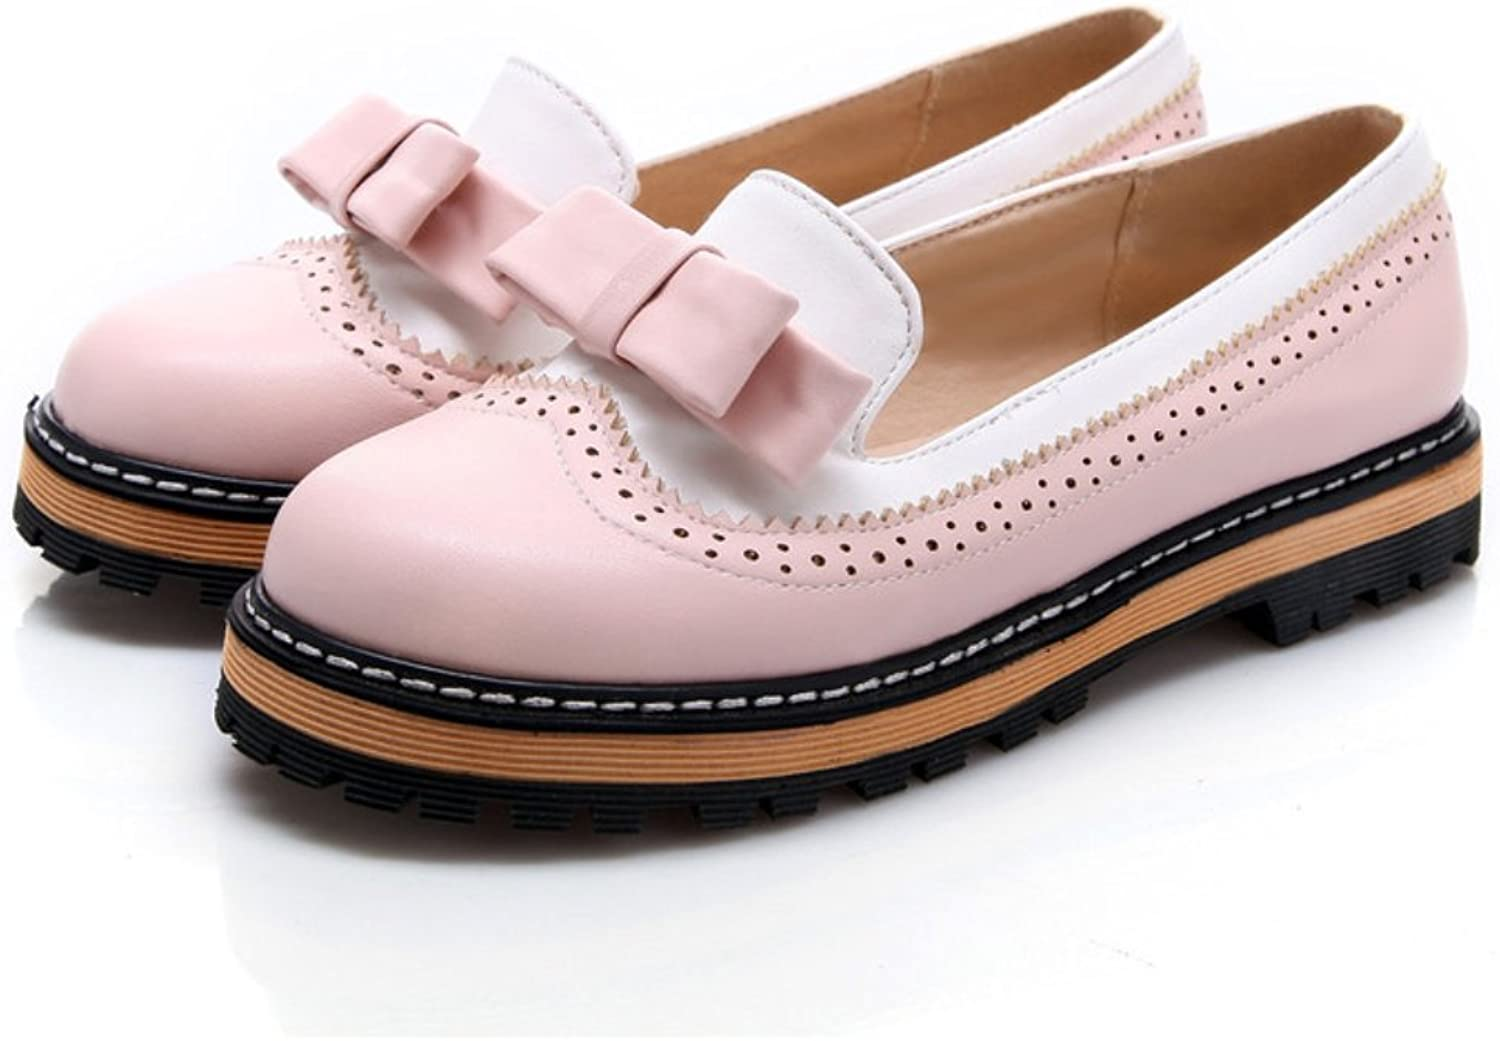 Milesline Candy color Women's Low Heel Bowknot Oxfords shoes